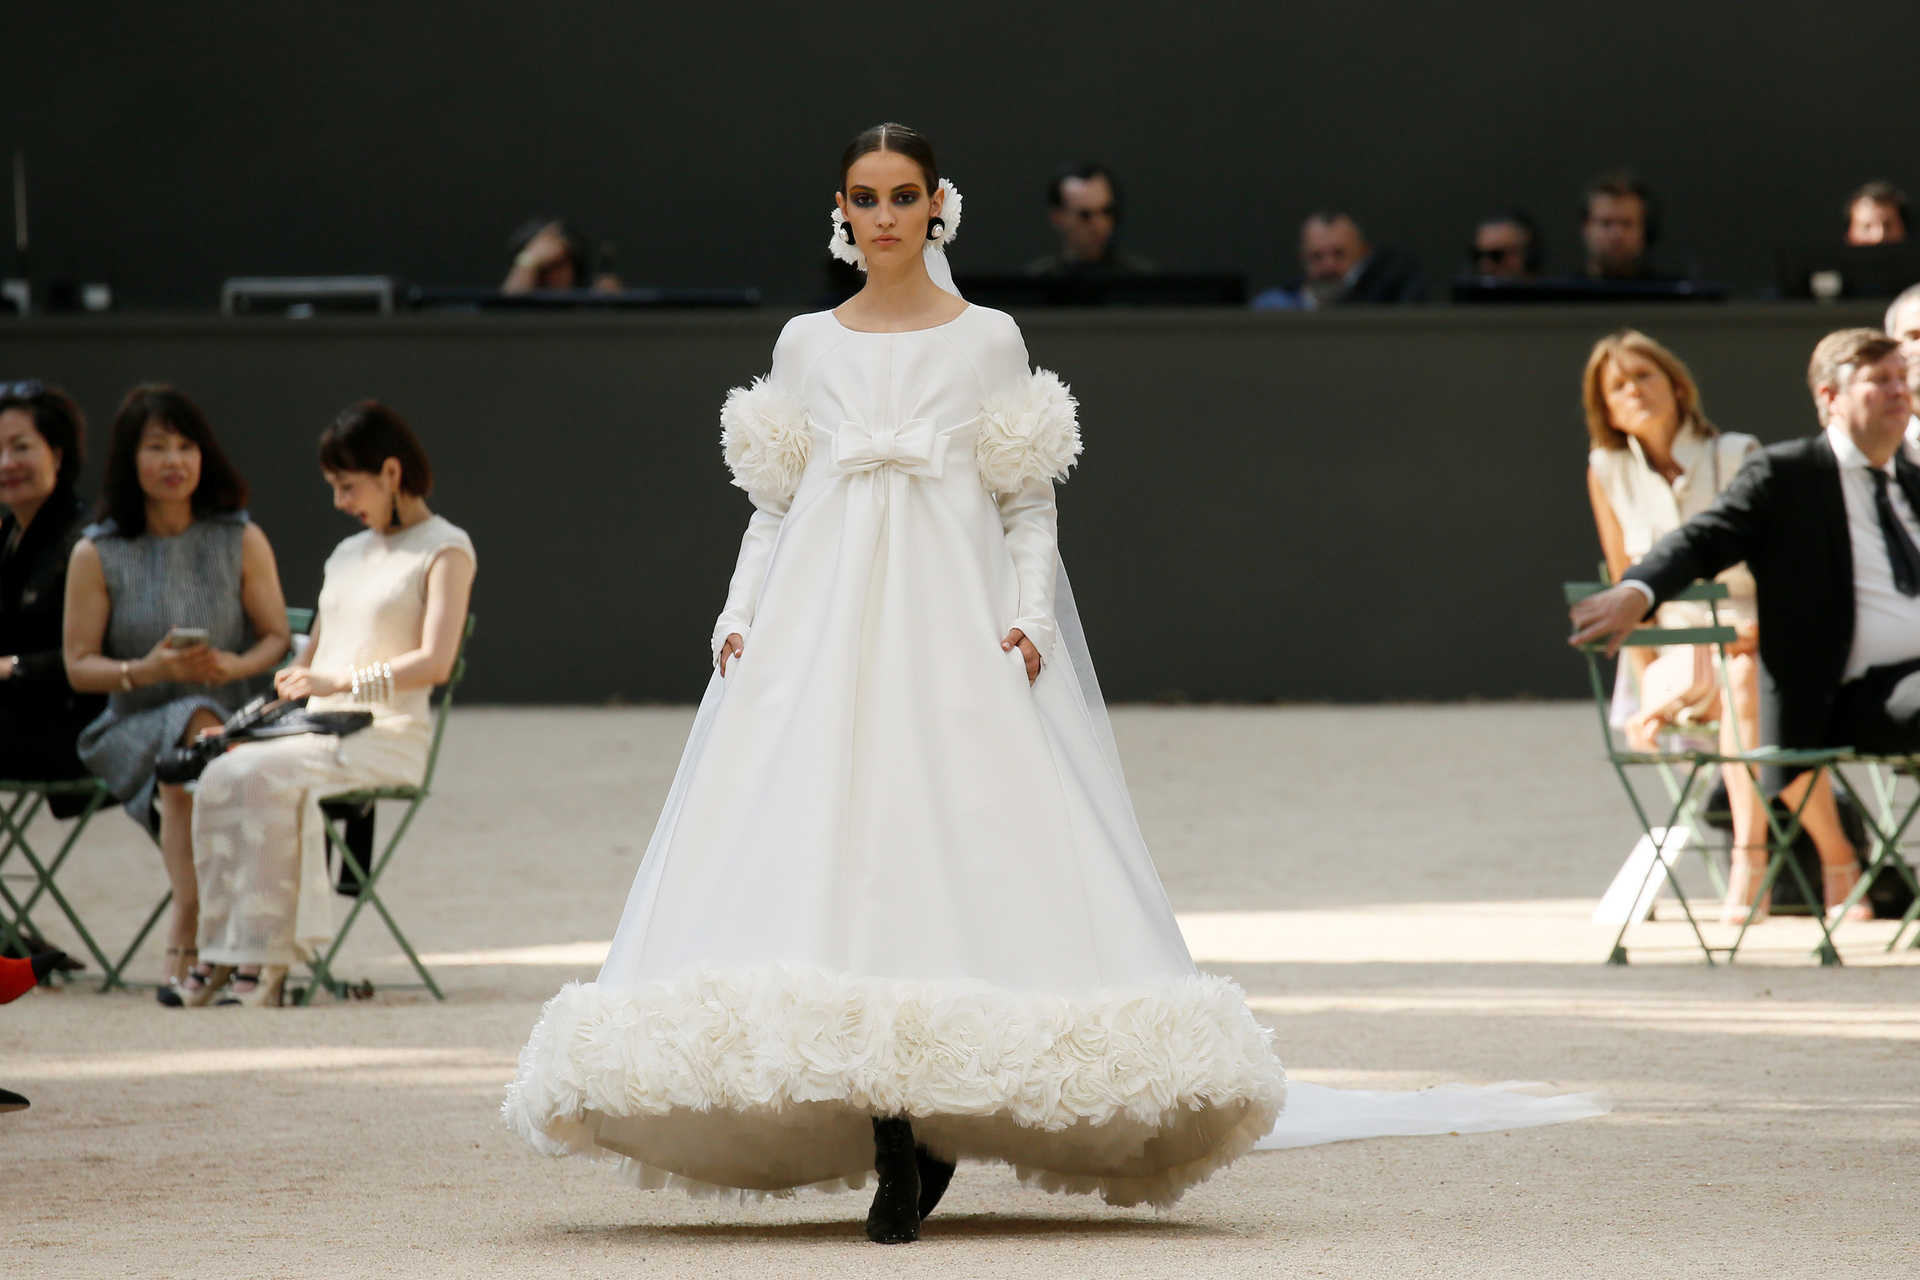 A model presents a creation by German designer Karl Lagerfeld as part of his Haute Couture Fall/Winter 2017/2018 collection for fashion house Chanel in Paris